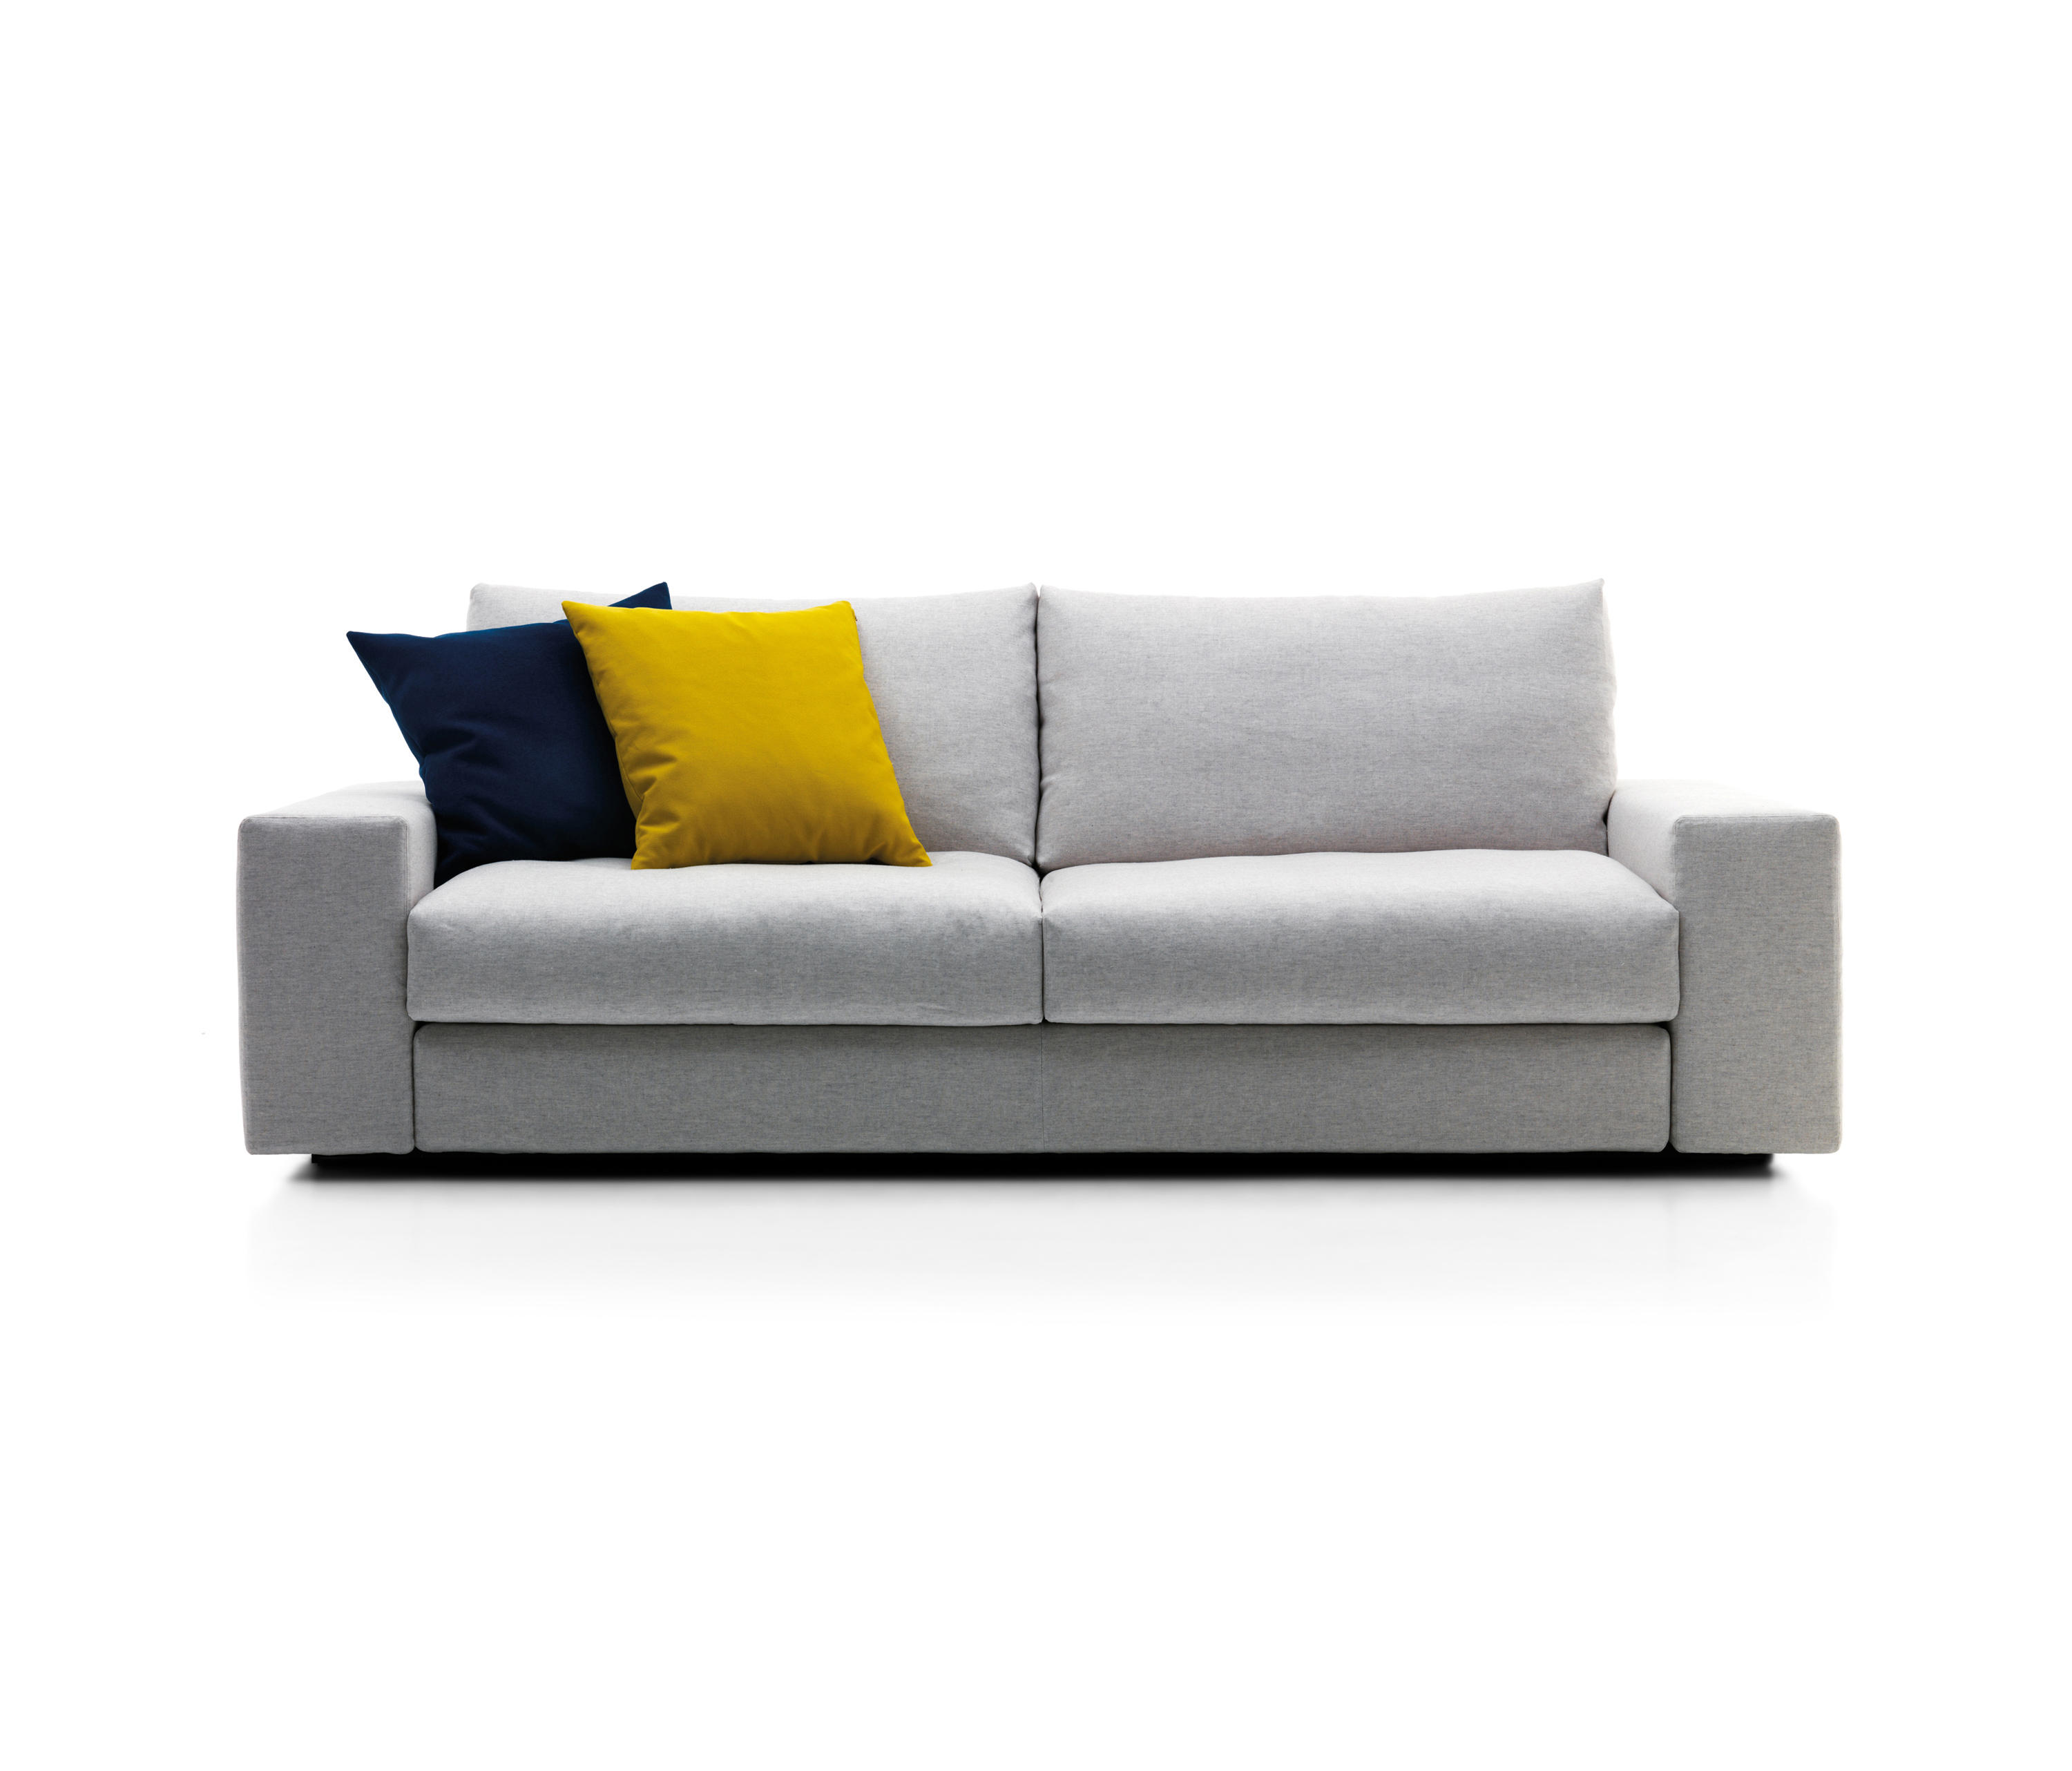 SQUARE C 2 SEATER SOFA Lounge sofas from Mussi Italy